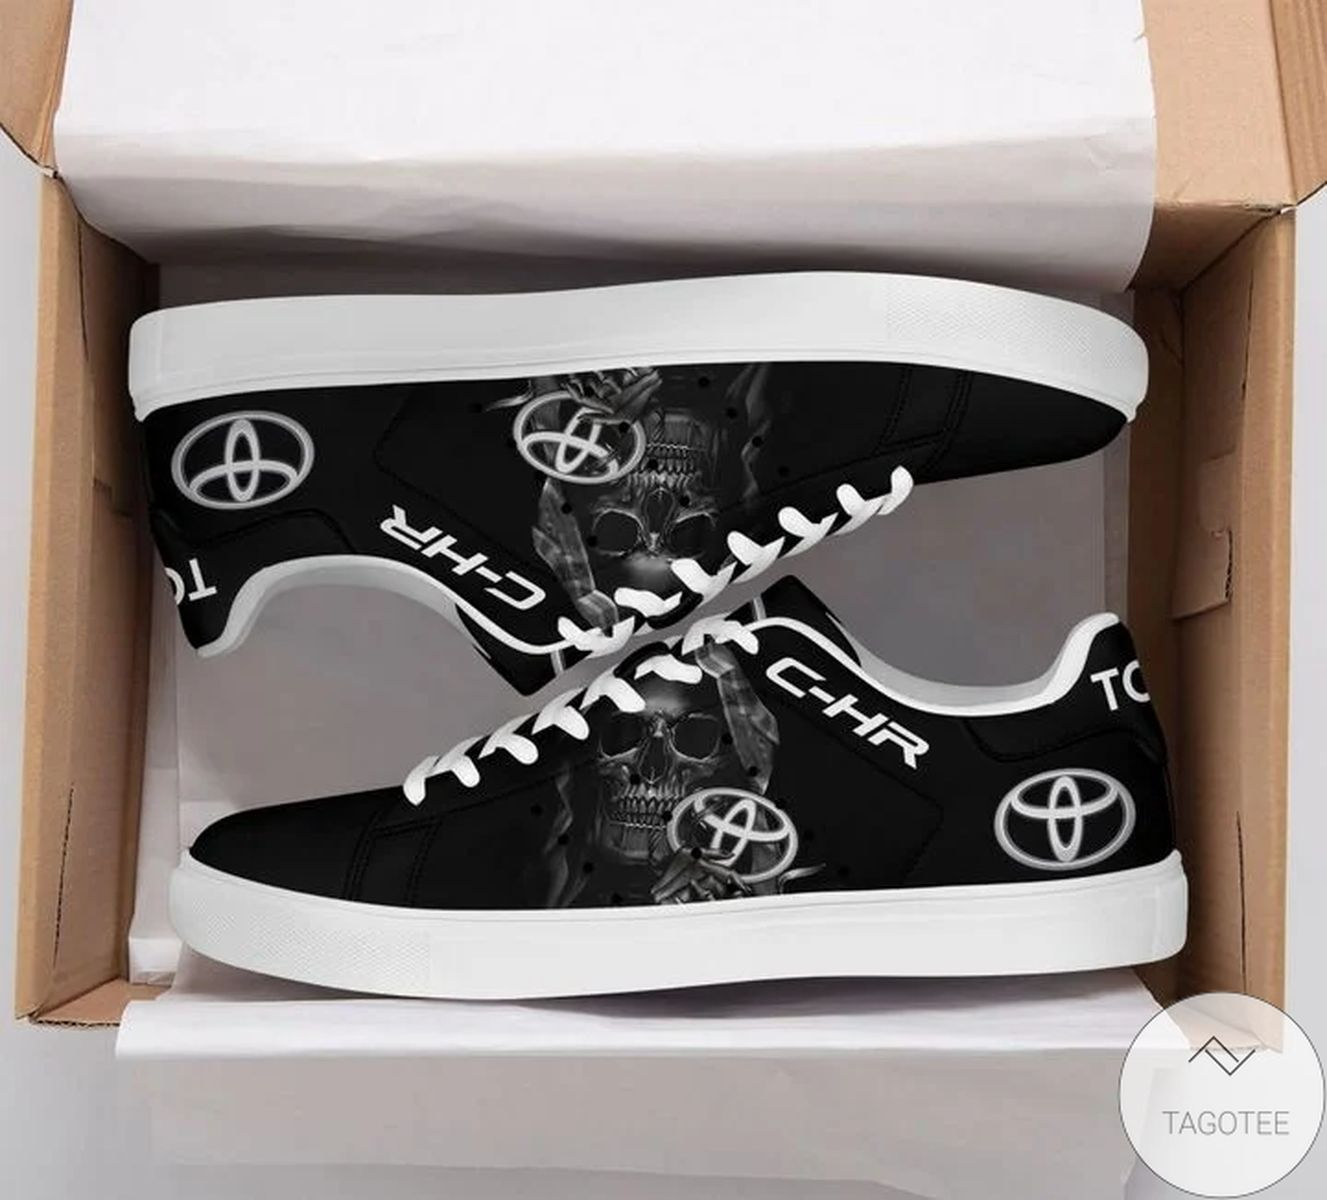 Very Good Quality Toyota C-hr Stan Smith Shoes